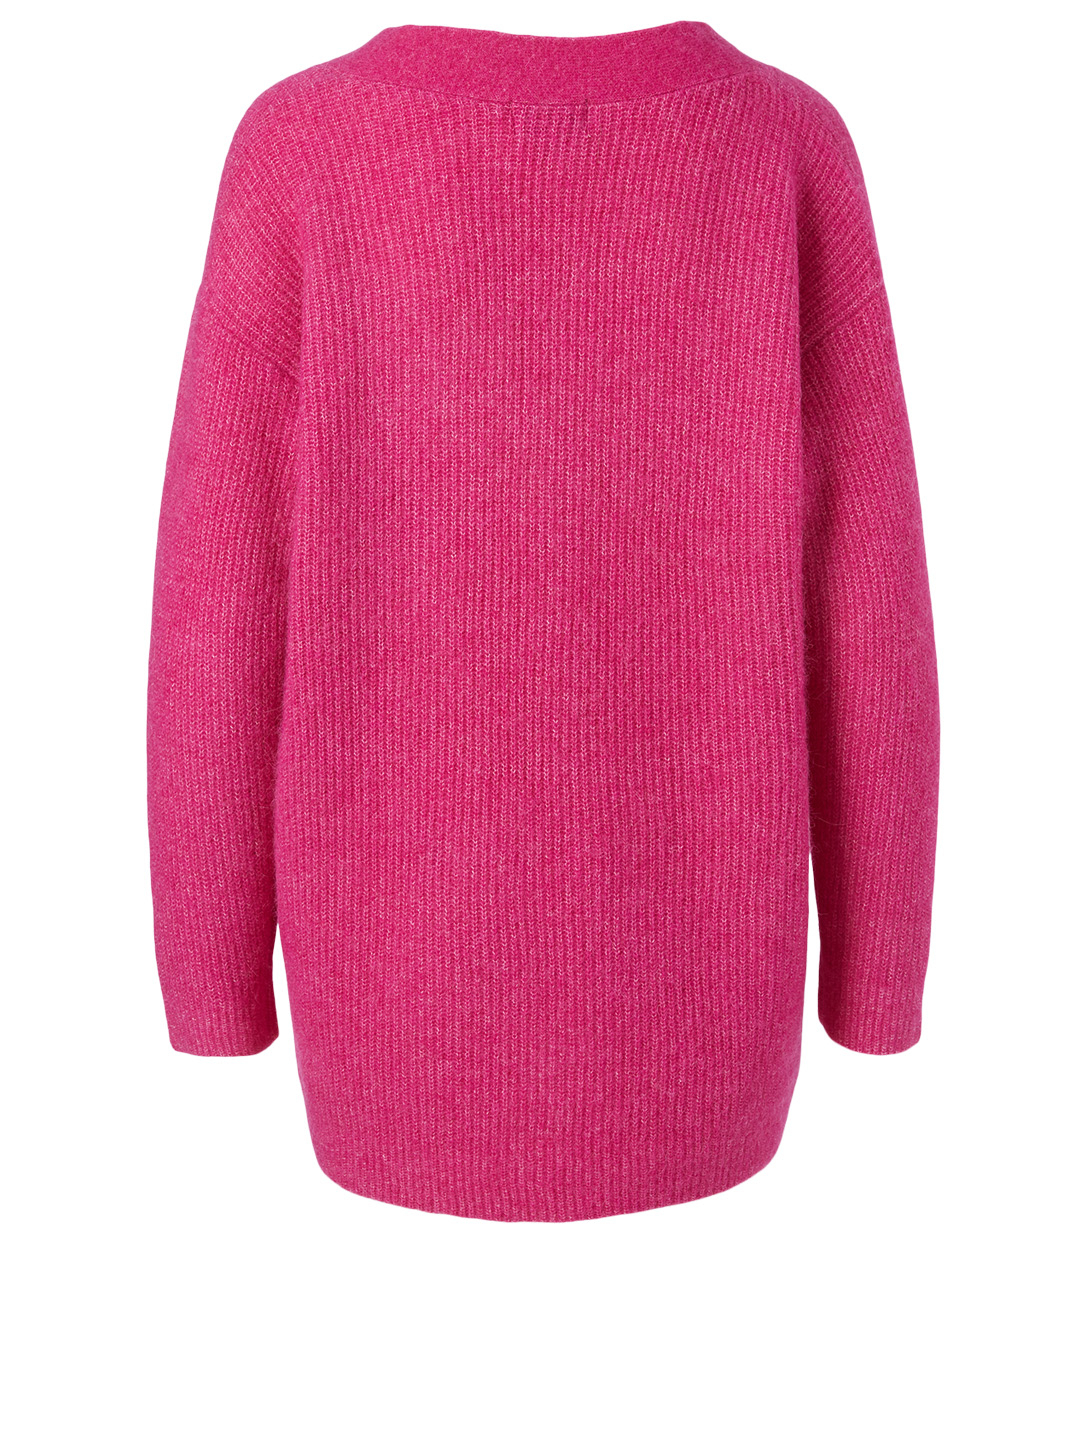 GANNI Alpaca And Wool V-Neck Sweater Women's Pink